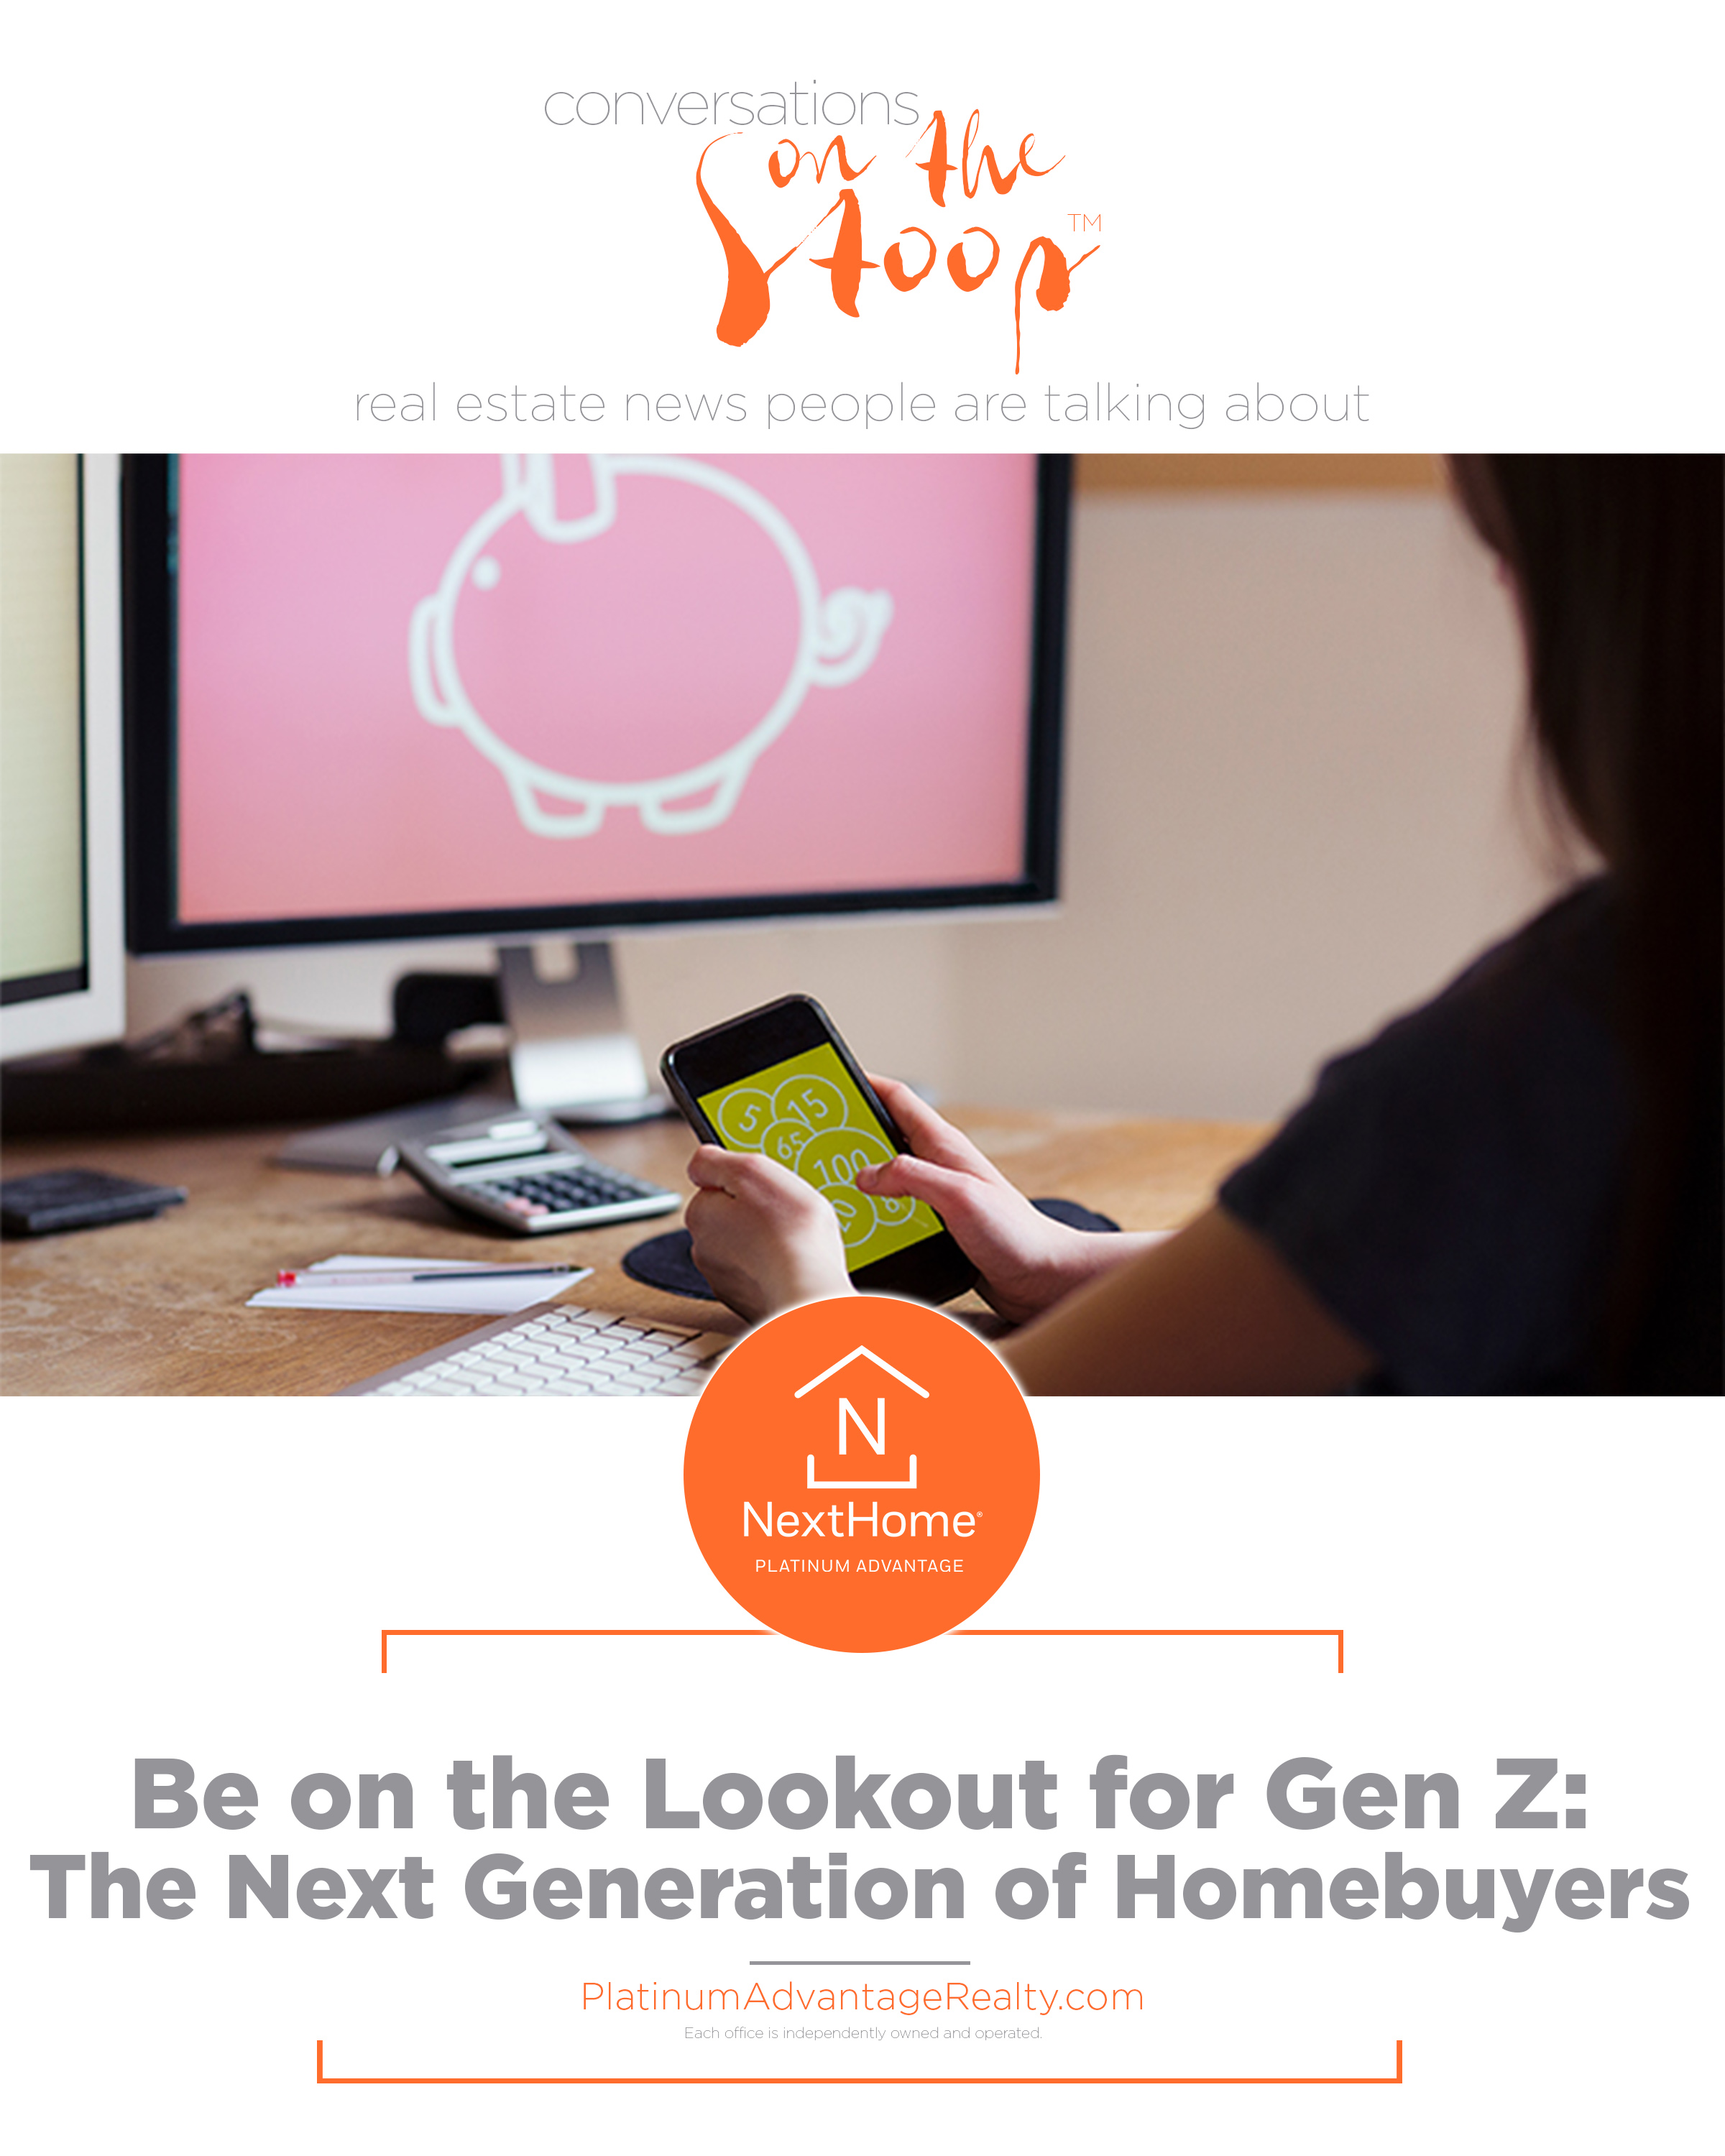 Be on the Lookout for Gen Z: The Next Generation of Homebuyers